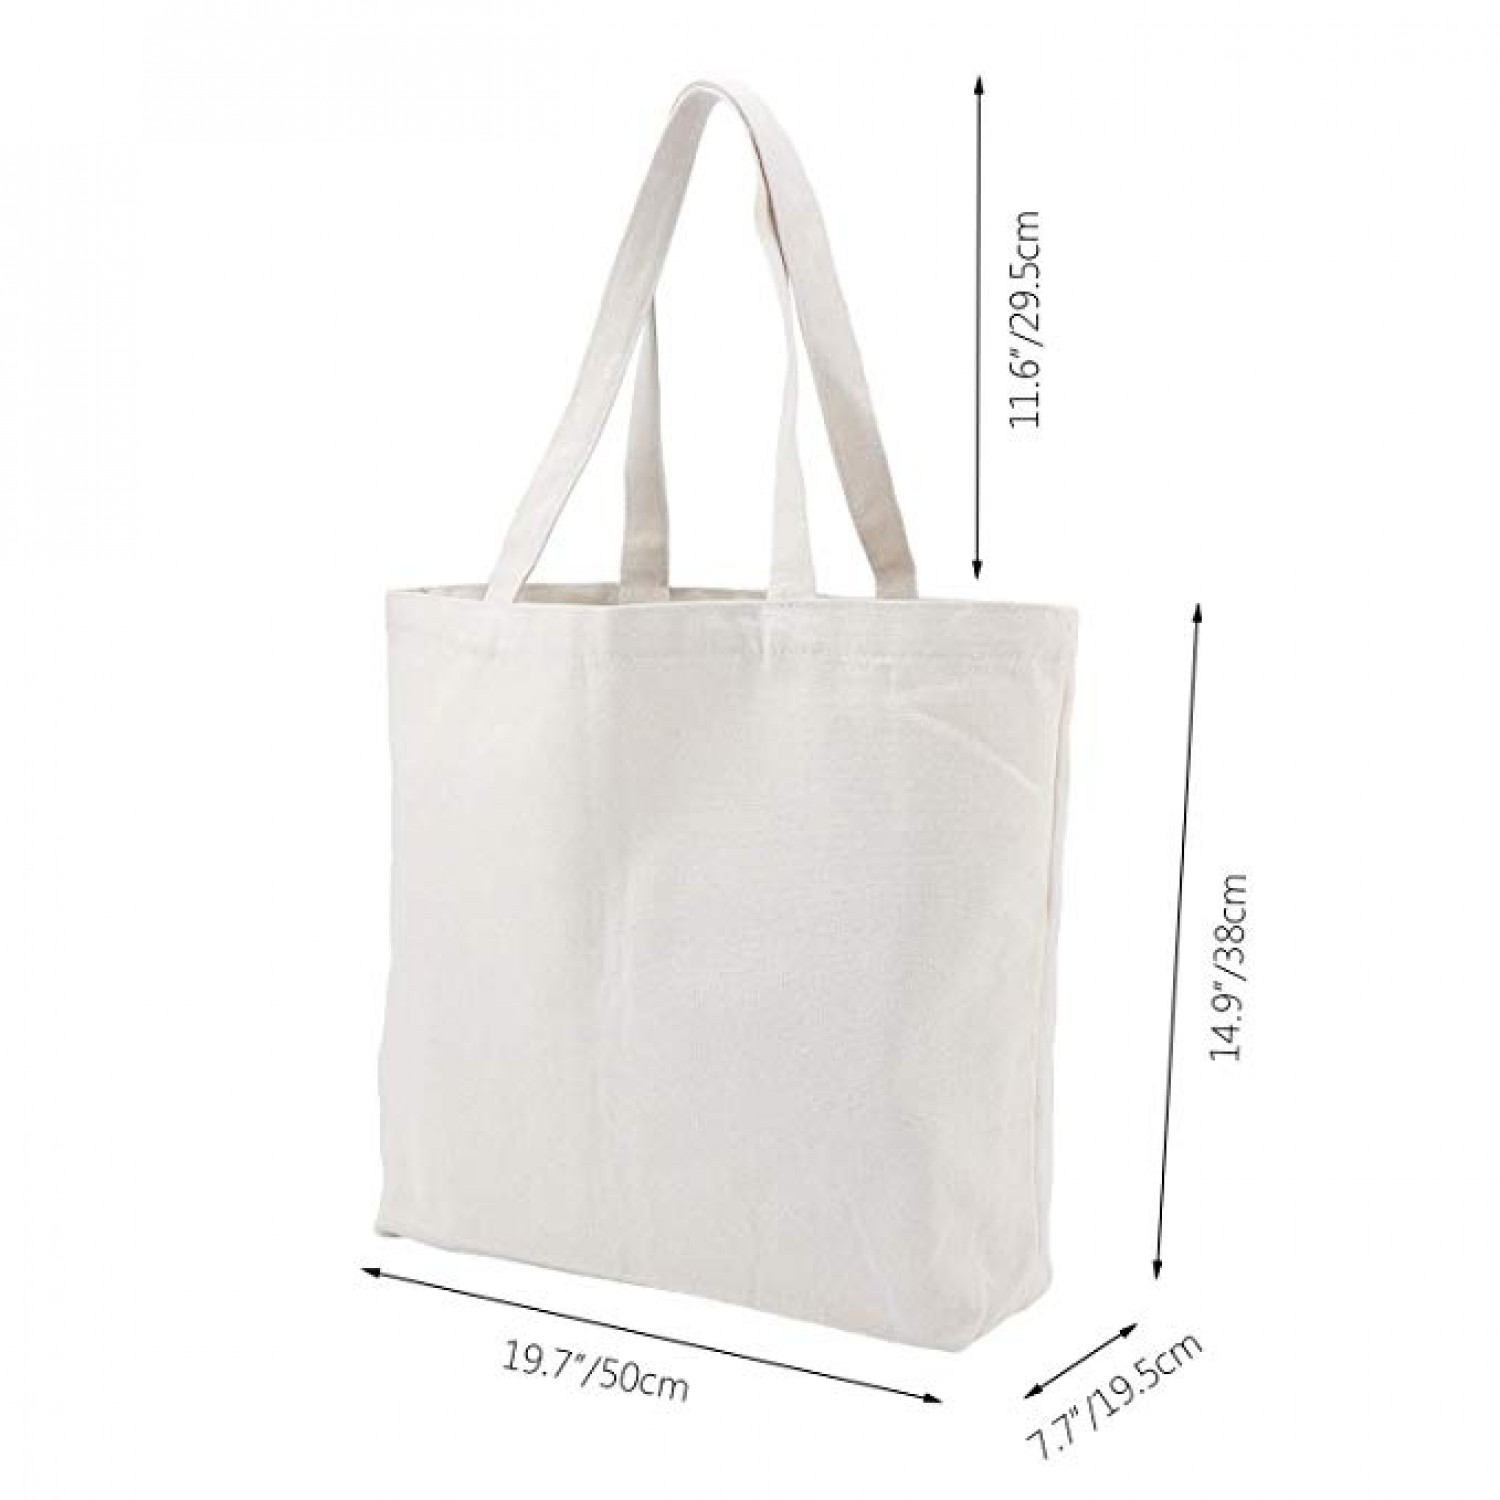 ab4d89696b3 ... Natural Reusable Grocery Bags, 6 Pack Segarty Large Shopping Canvas Bags  with Bottom Gusset, ...